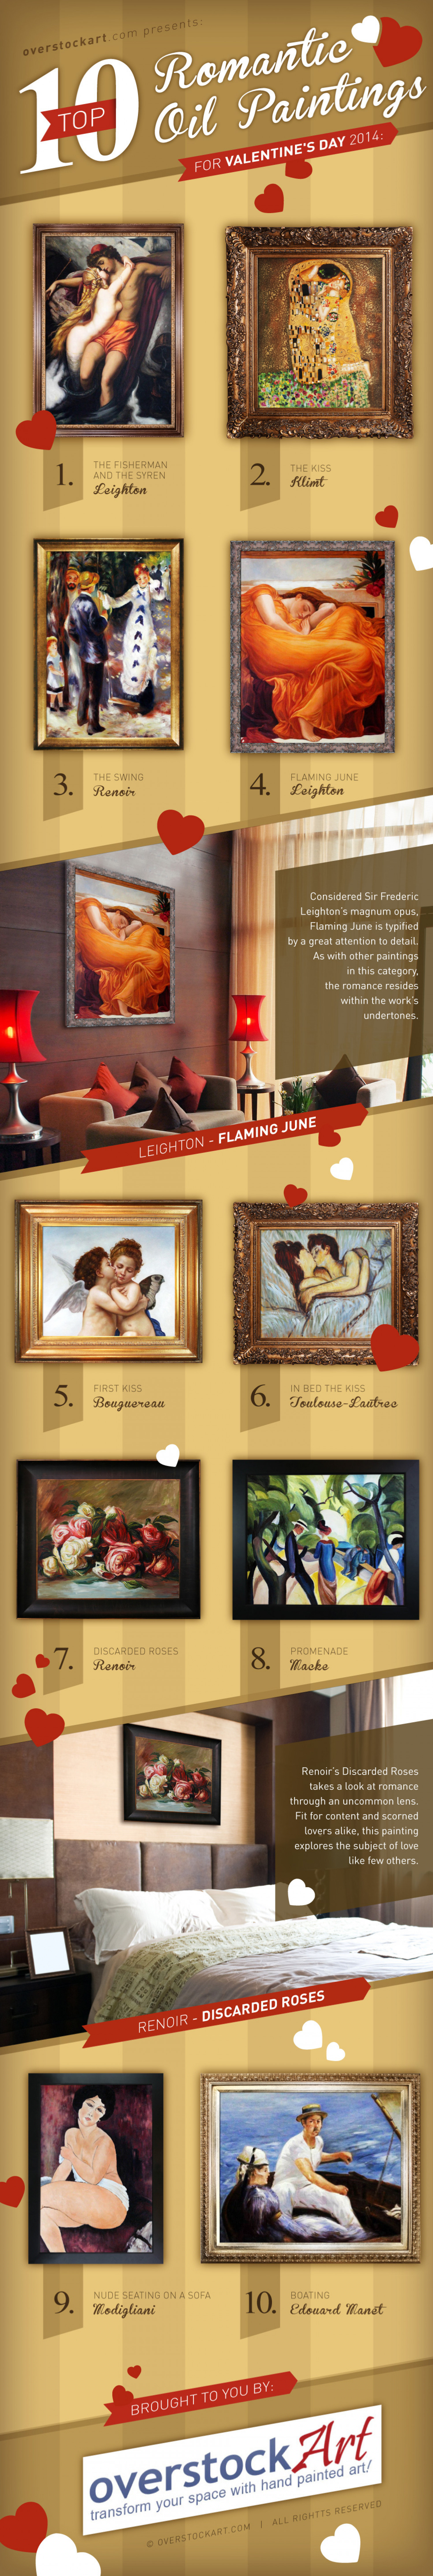 Top 10 Most Romantic Oil Painting for Valentine's Day 2014 Infographic